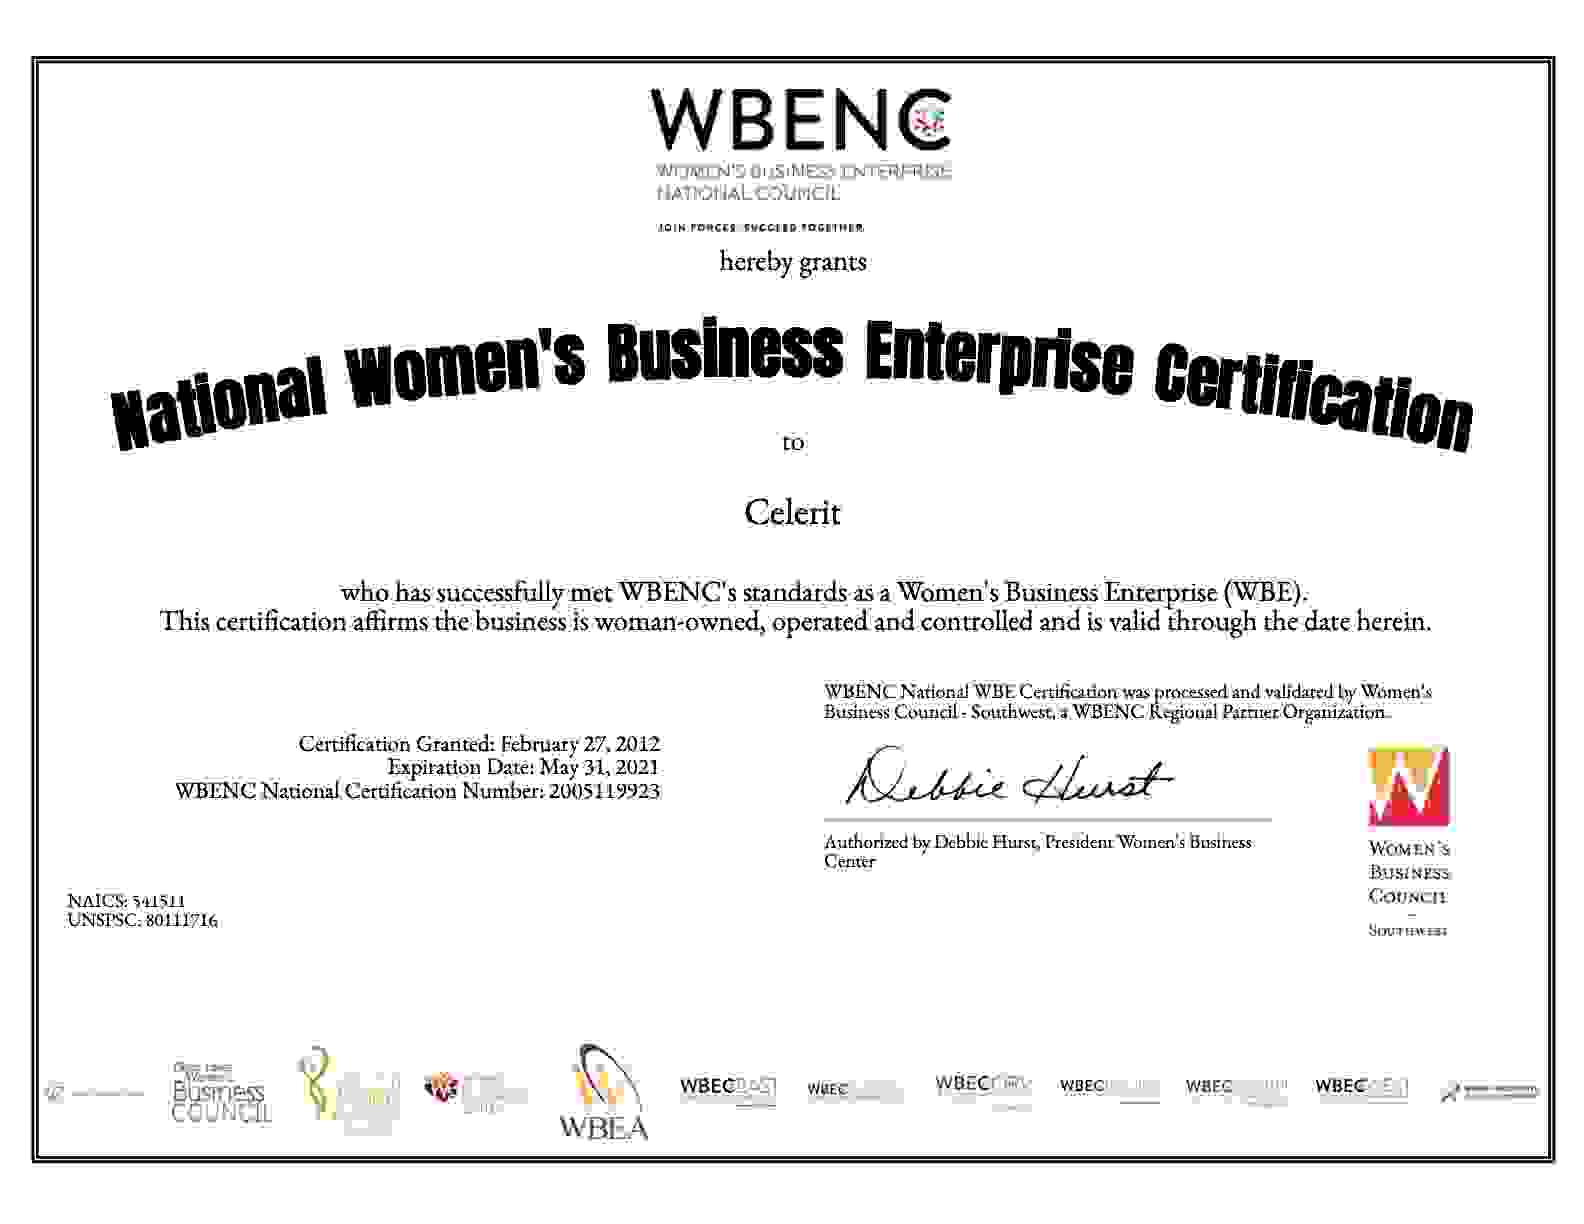 Celerit WBENC Certification